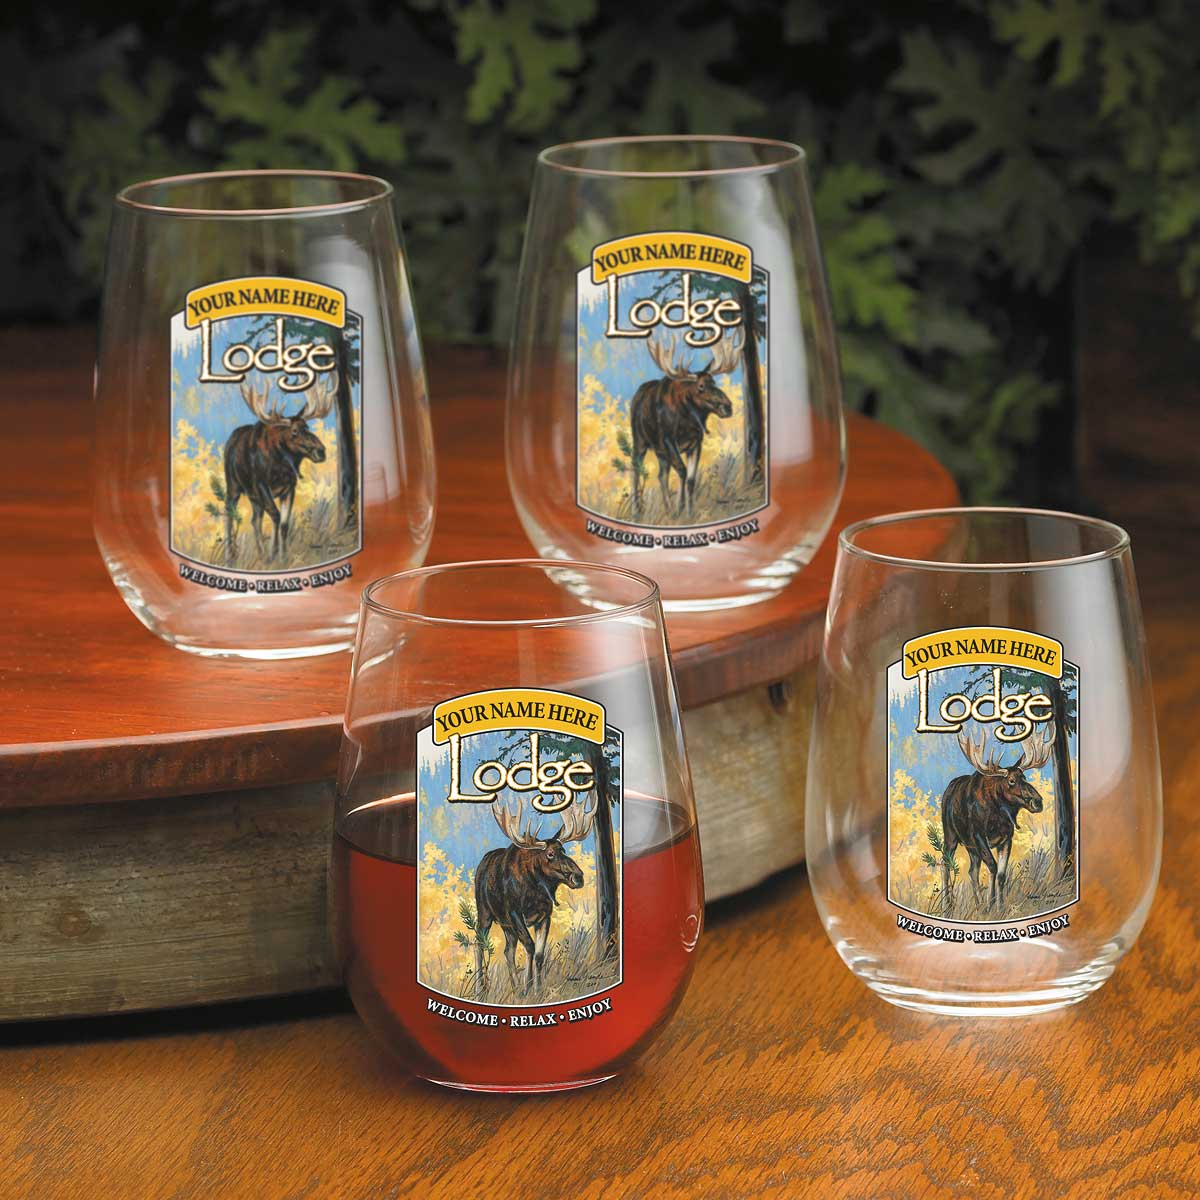 8722615505: Moose Lodge Personalized Wine Glasses (Set of 4)